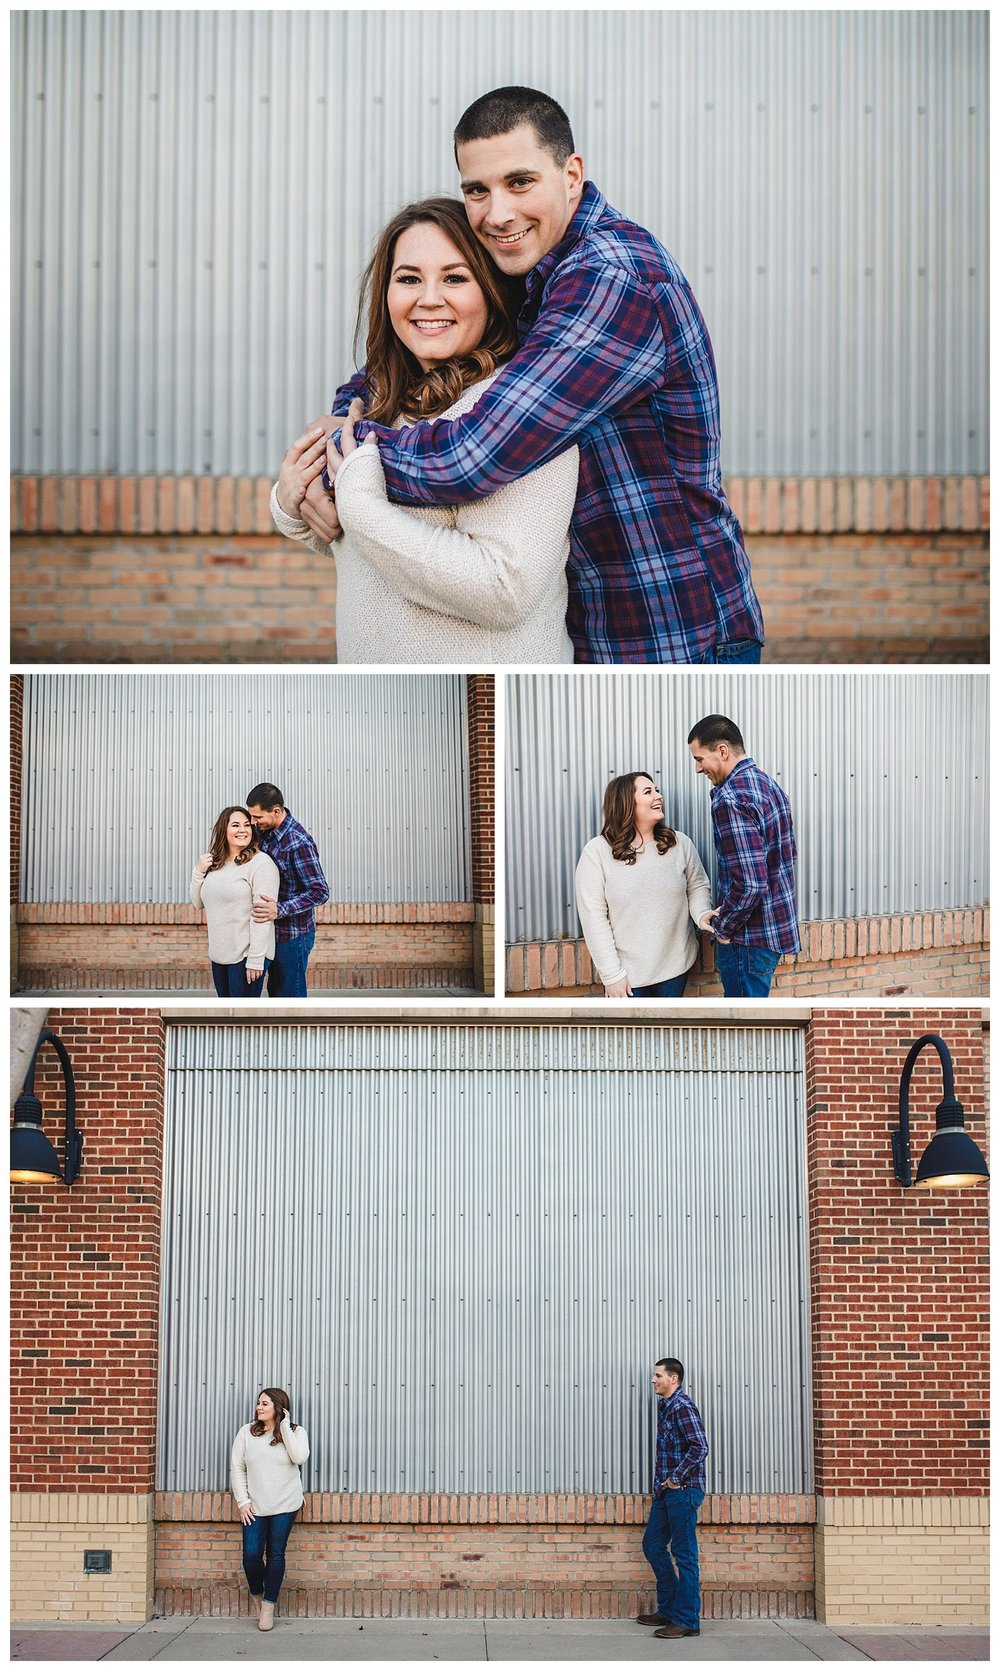 Kelsey_Diane_Photography_T-Bones_Stadium_Kansas_Wandering_Adventourus_Kansas_City_Engagement_0098.jpg